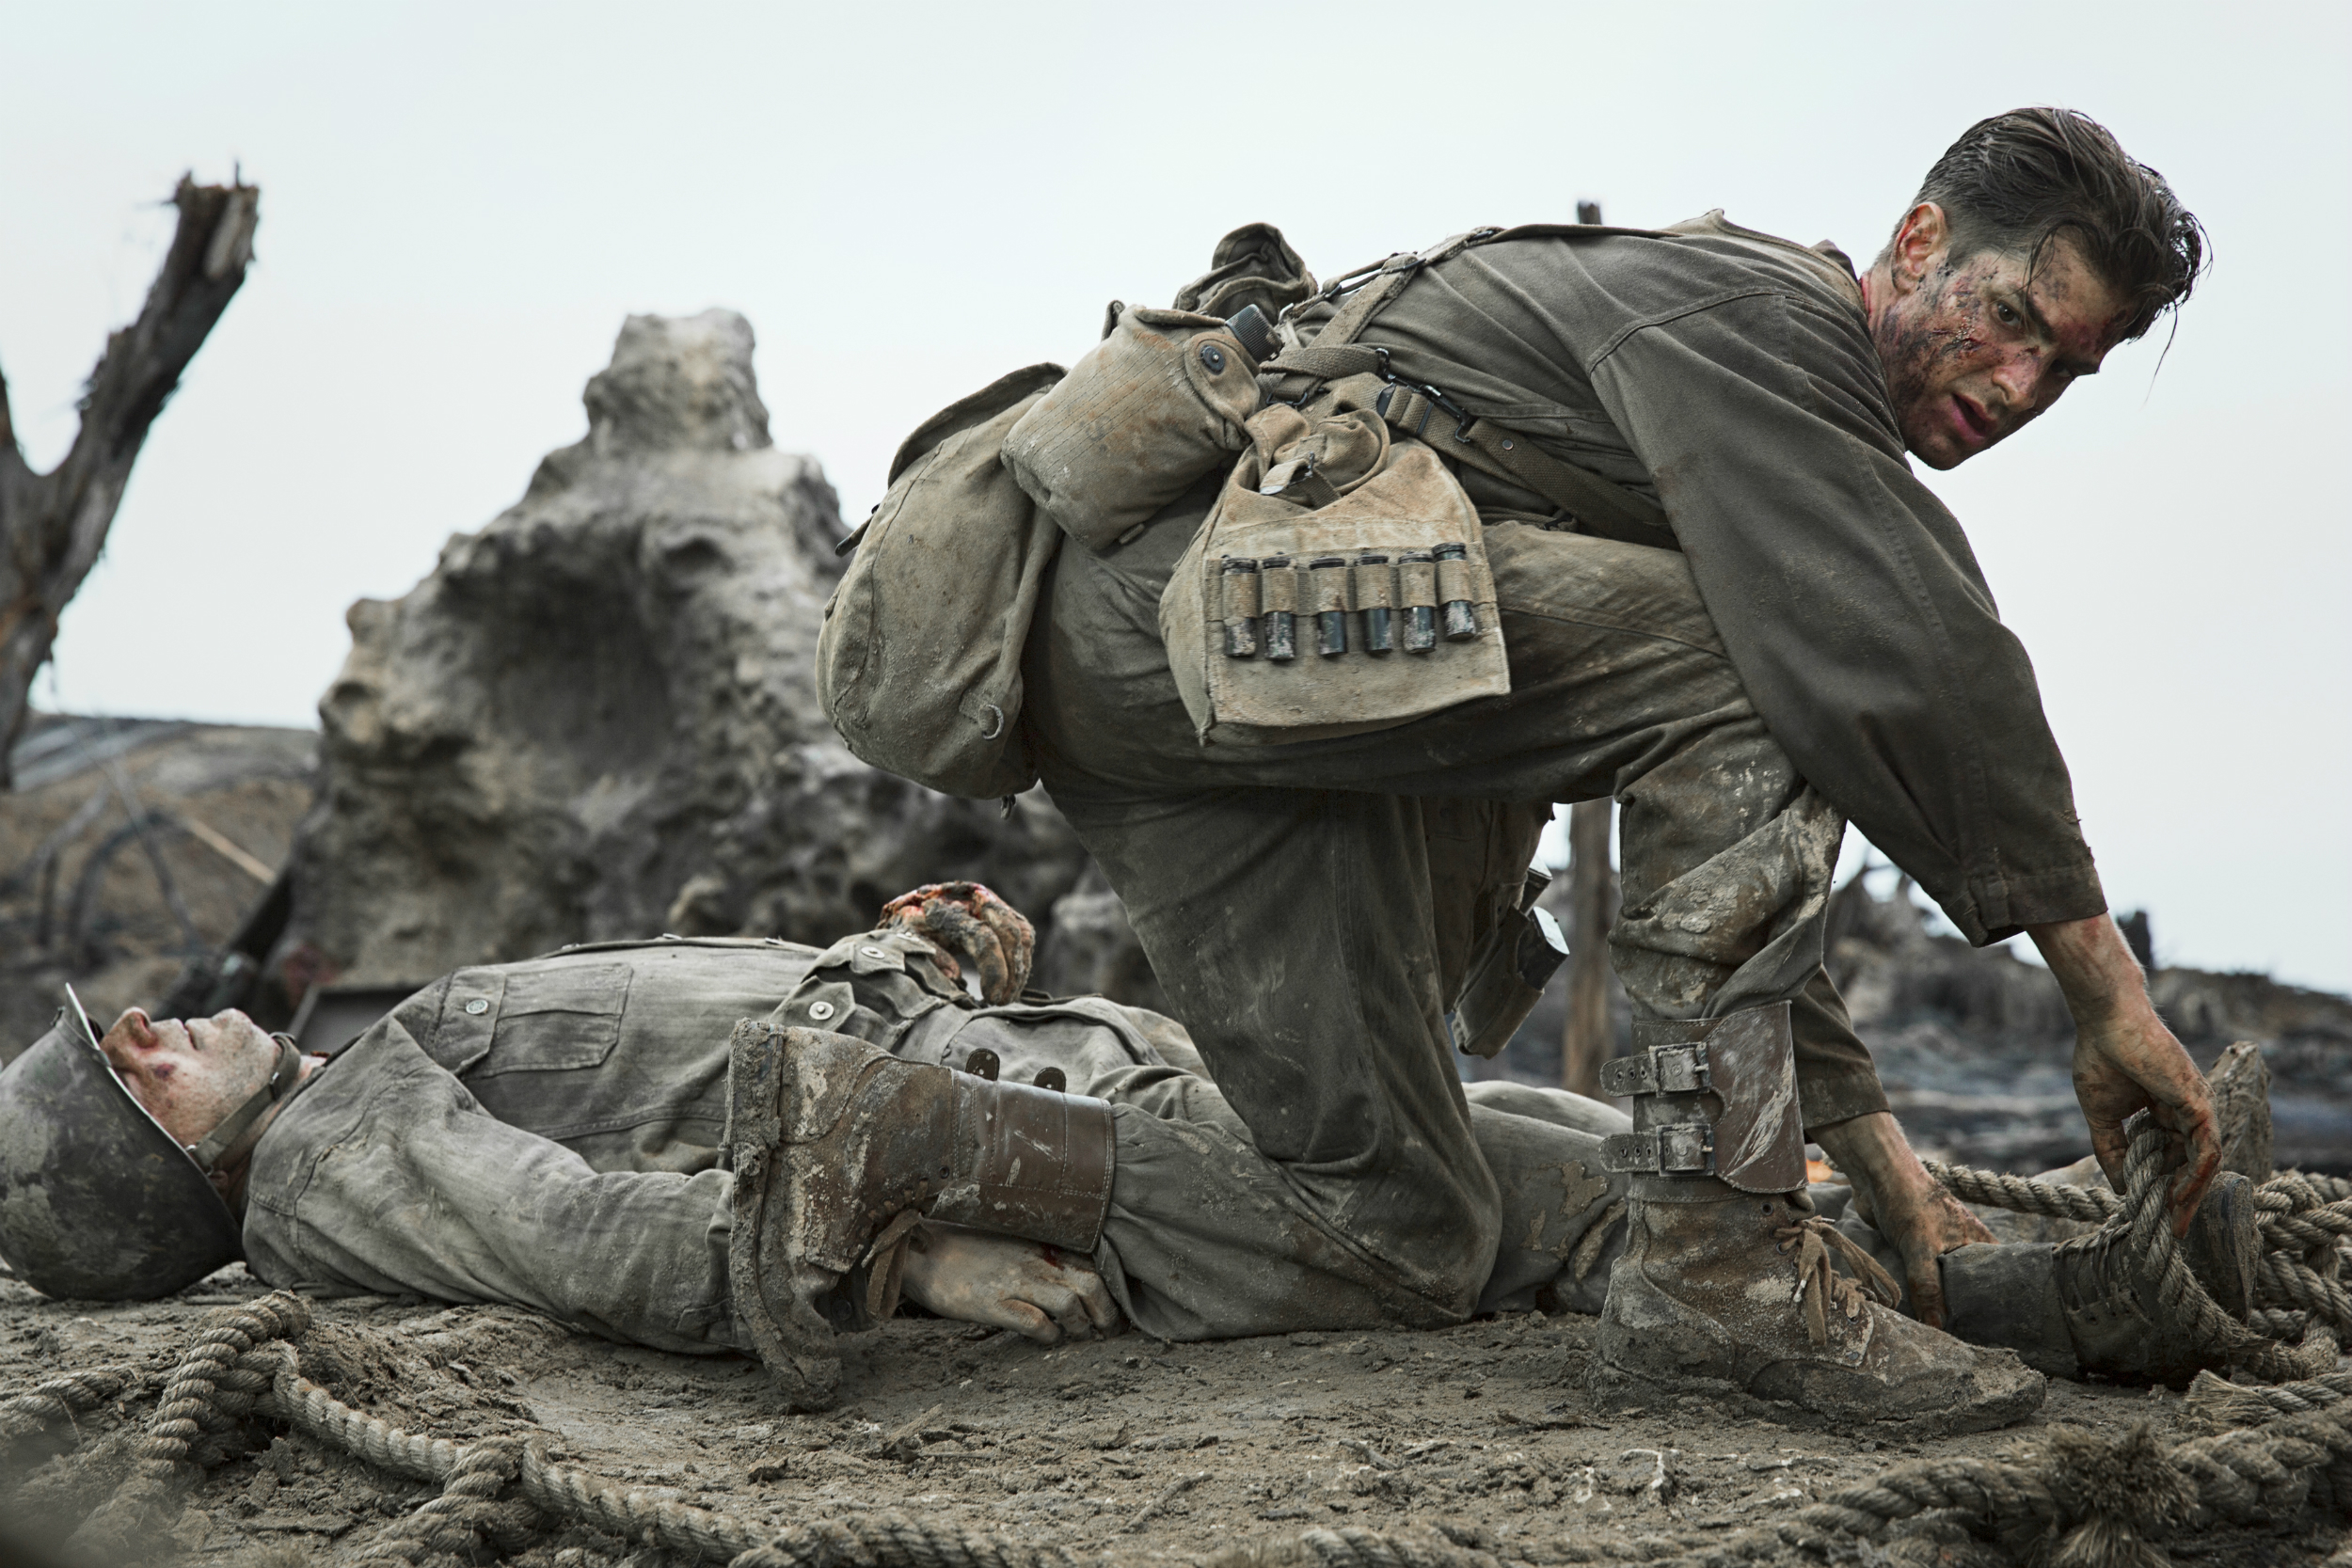 Hacksaw Ridge - Amanda discusses the World War II film, Hacksaw Ridge, with return guests Nathan and Sam. Nathan counts the squares in a cargo net, Sam tells a story from her days in boot camp, Amanda wants to run her hands through Andrew Garfield's hair, and both Amanda and Sam are fans of the character Hollywood…'s physique.